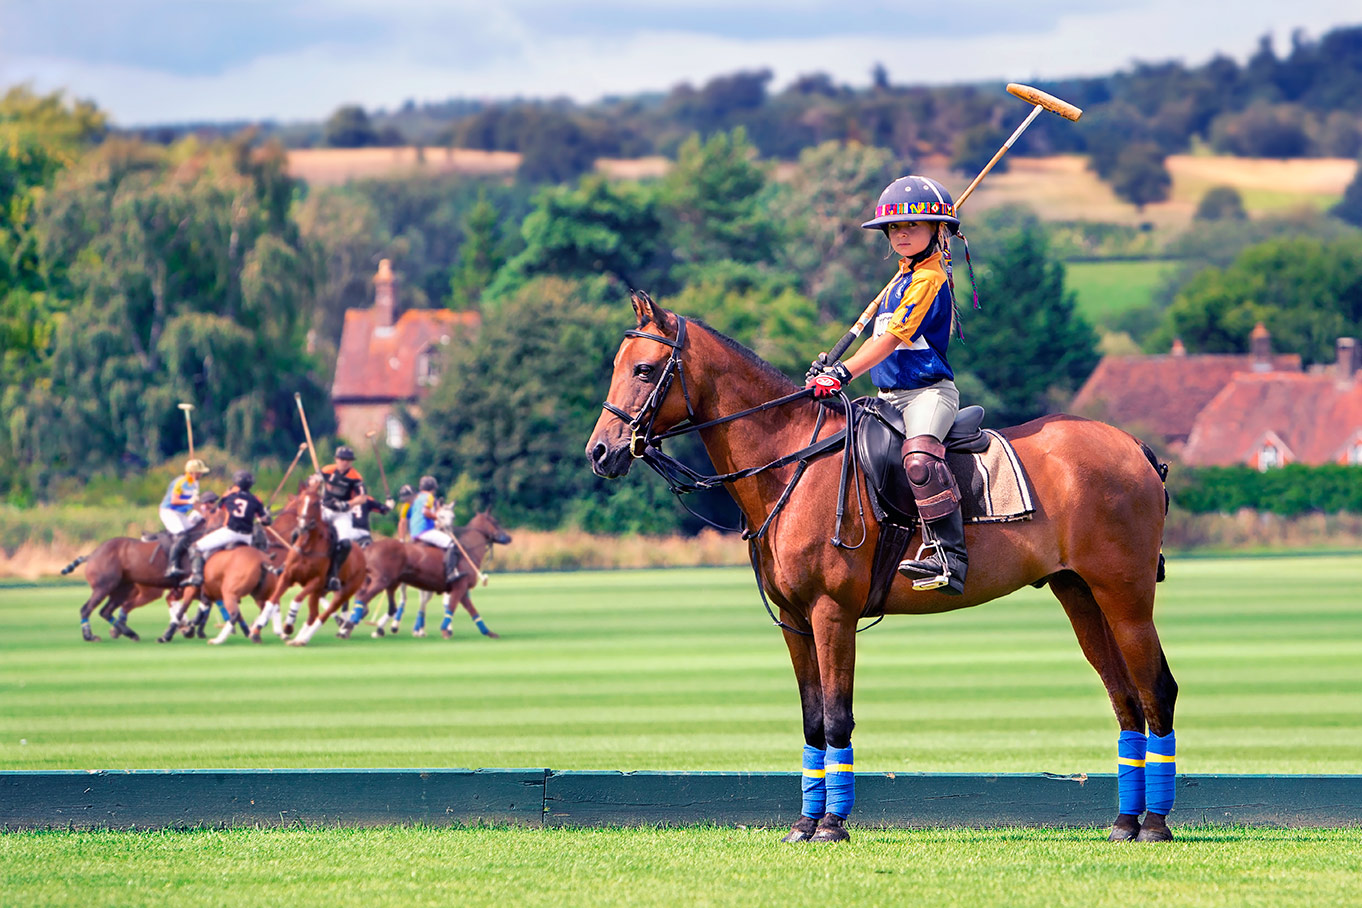 Caspian Polo at Cowdray